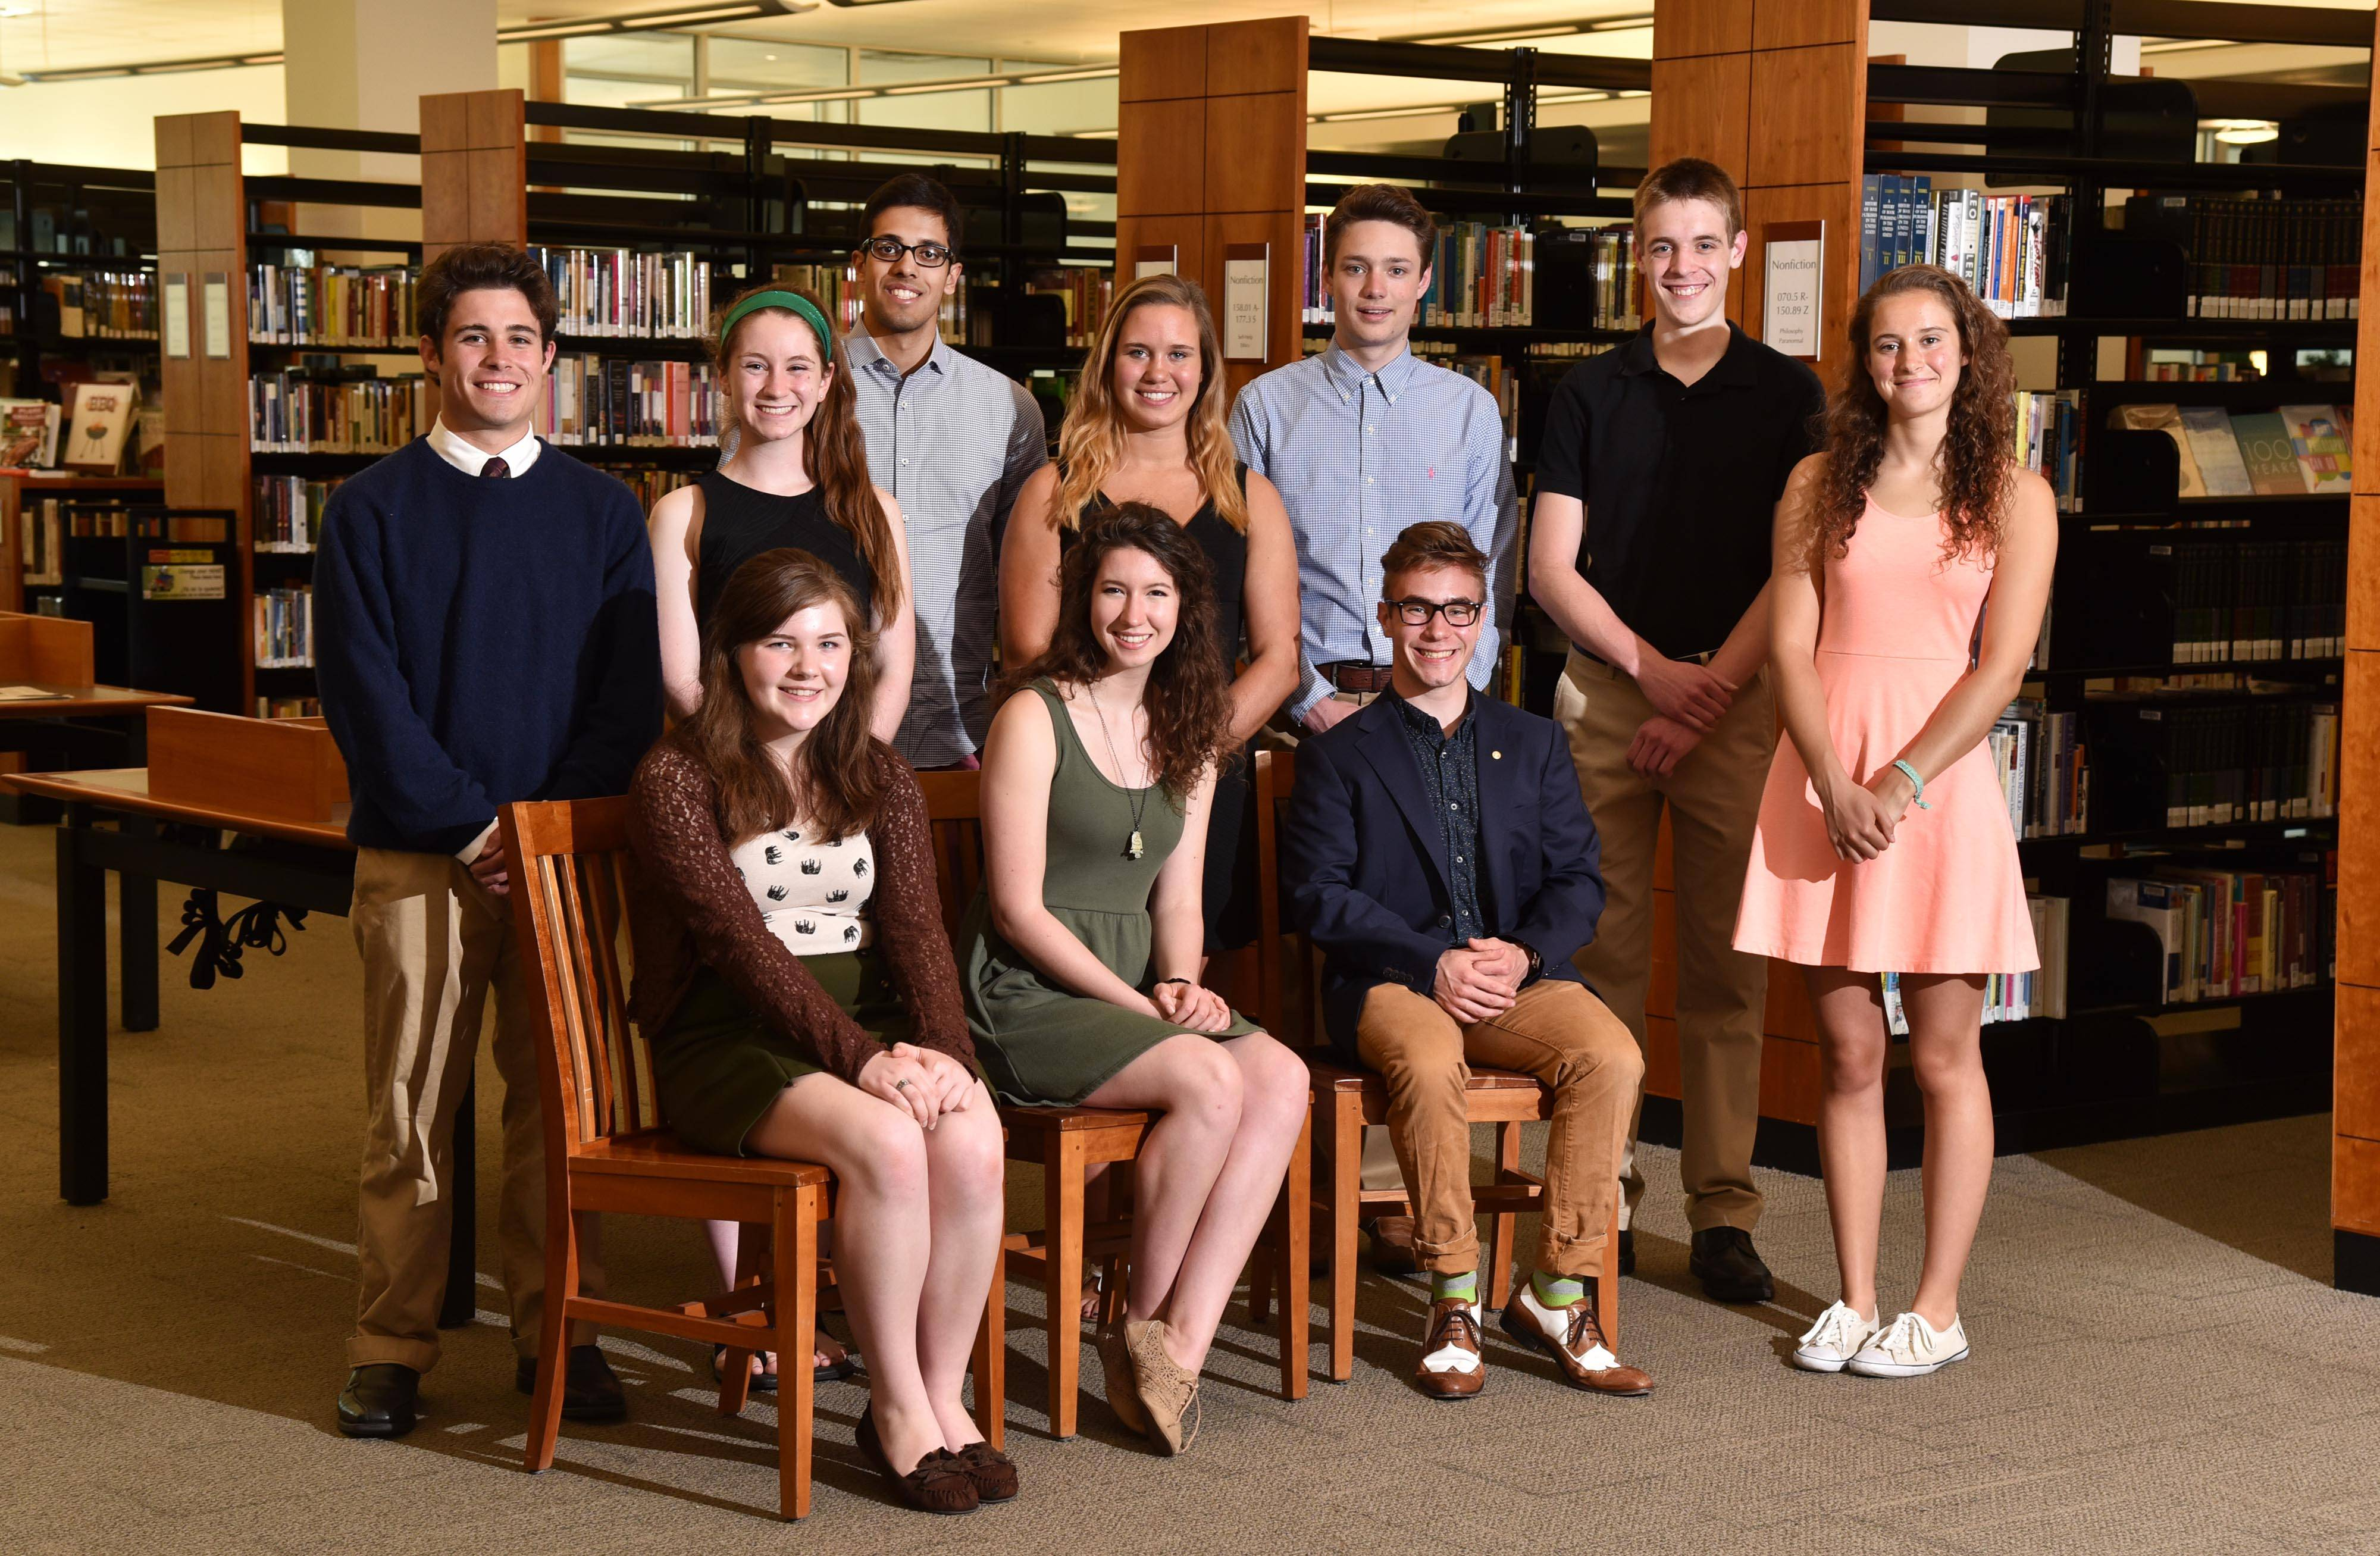 Members of the Daily Herald Fox Valley Academic Team are, from left, sitting, Amelia Deering, Elgin Academy; Nicole Renee Palmer, St. Charles North High School; Ryan Thornton, Marmion Academy; and from left, standing, Maximilian Hall Troyke, Elgin High School; Caitlin O'Callaghan, Illinois Math and Science Academy; Eshan Mehrotra, Illinois Math and Science Academy; Amanda Rose Drobek, St. Edward Central Catholic High School; Jacob Fiedler, Marian Central Catholic High School; Alan Koval, St. Charles East High School; and Maisy Feeley, Elgin Academy.